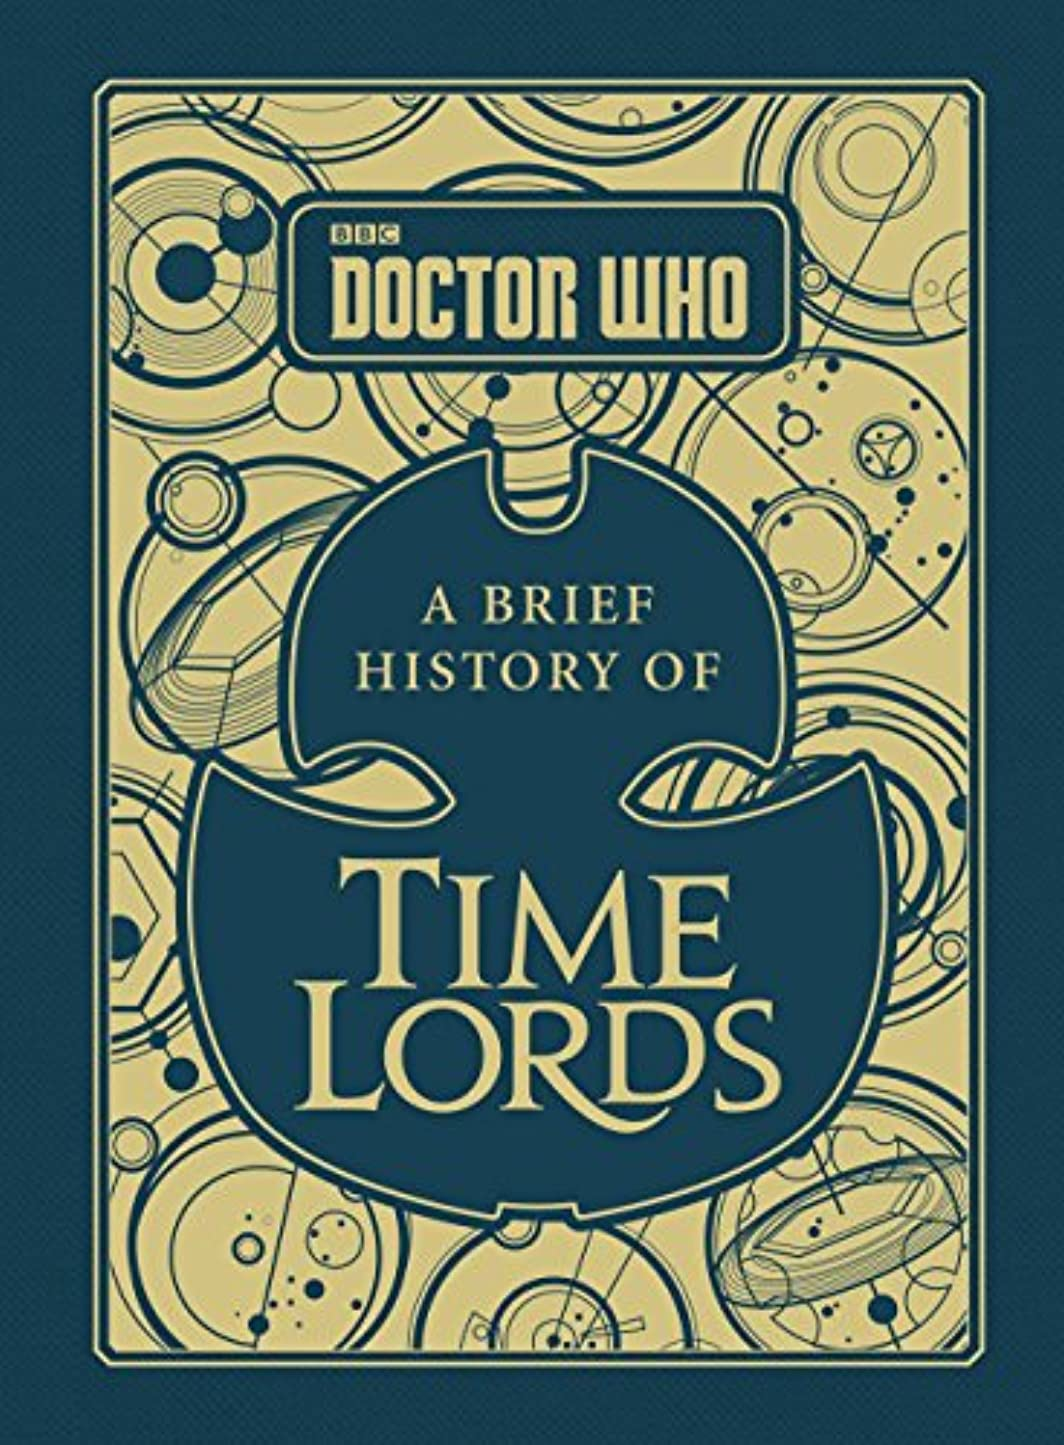 Doctor Who: A Brief History of Time Lords (Dr Who) (English Edition)